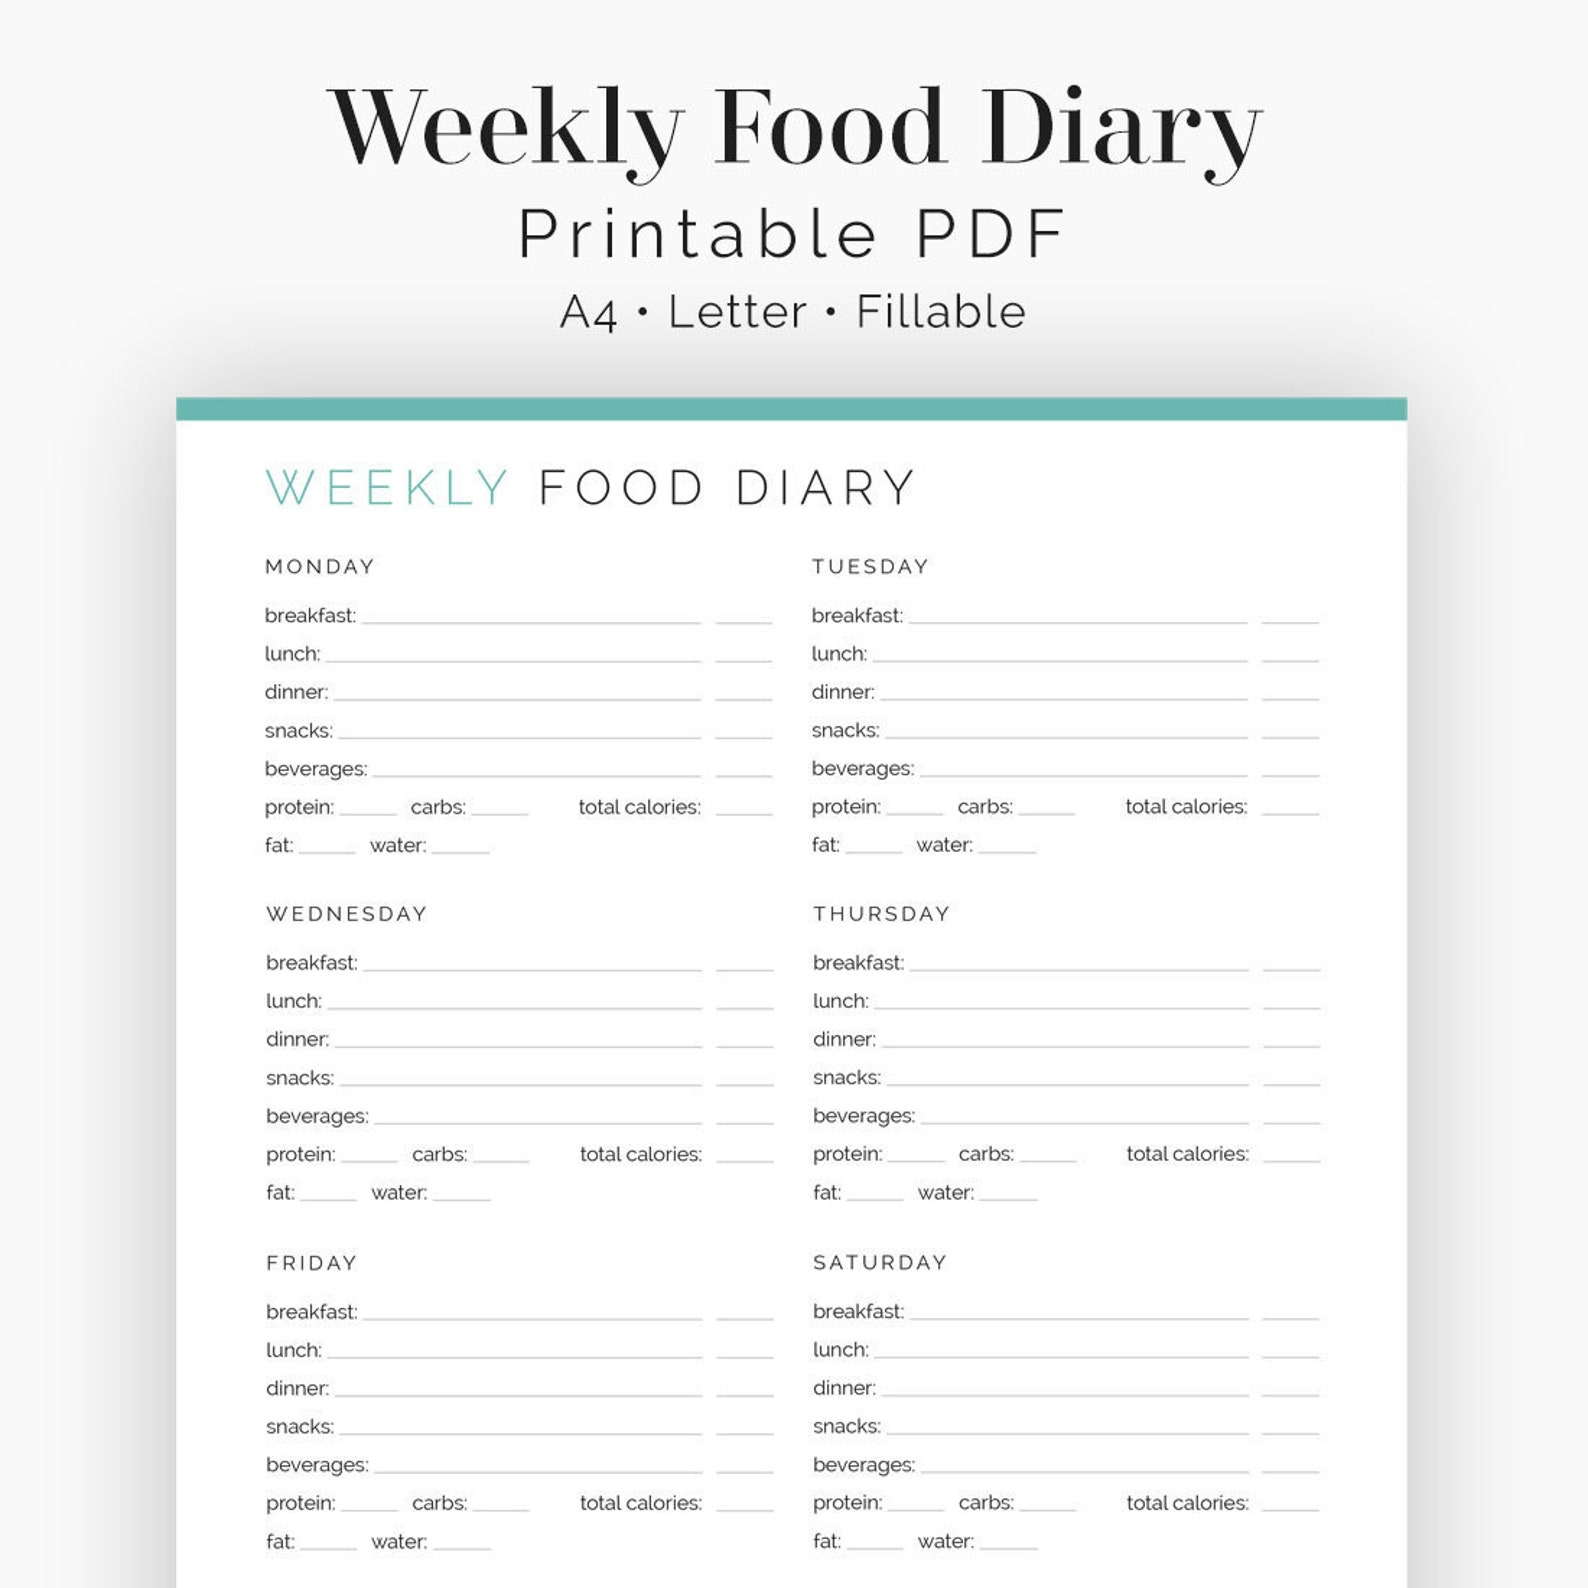 Weekly Food Diary - Fillable